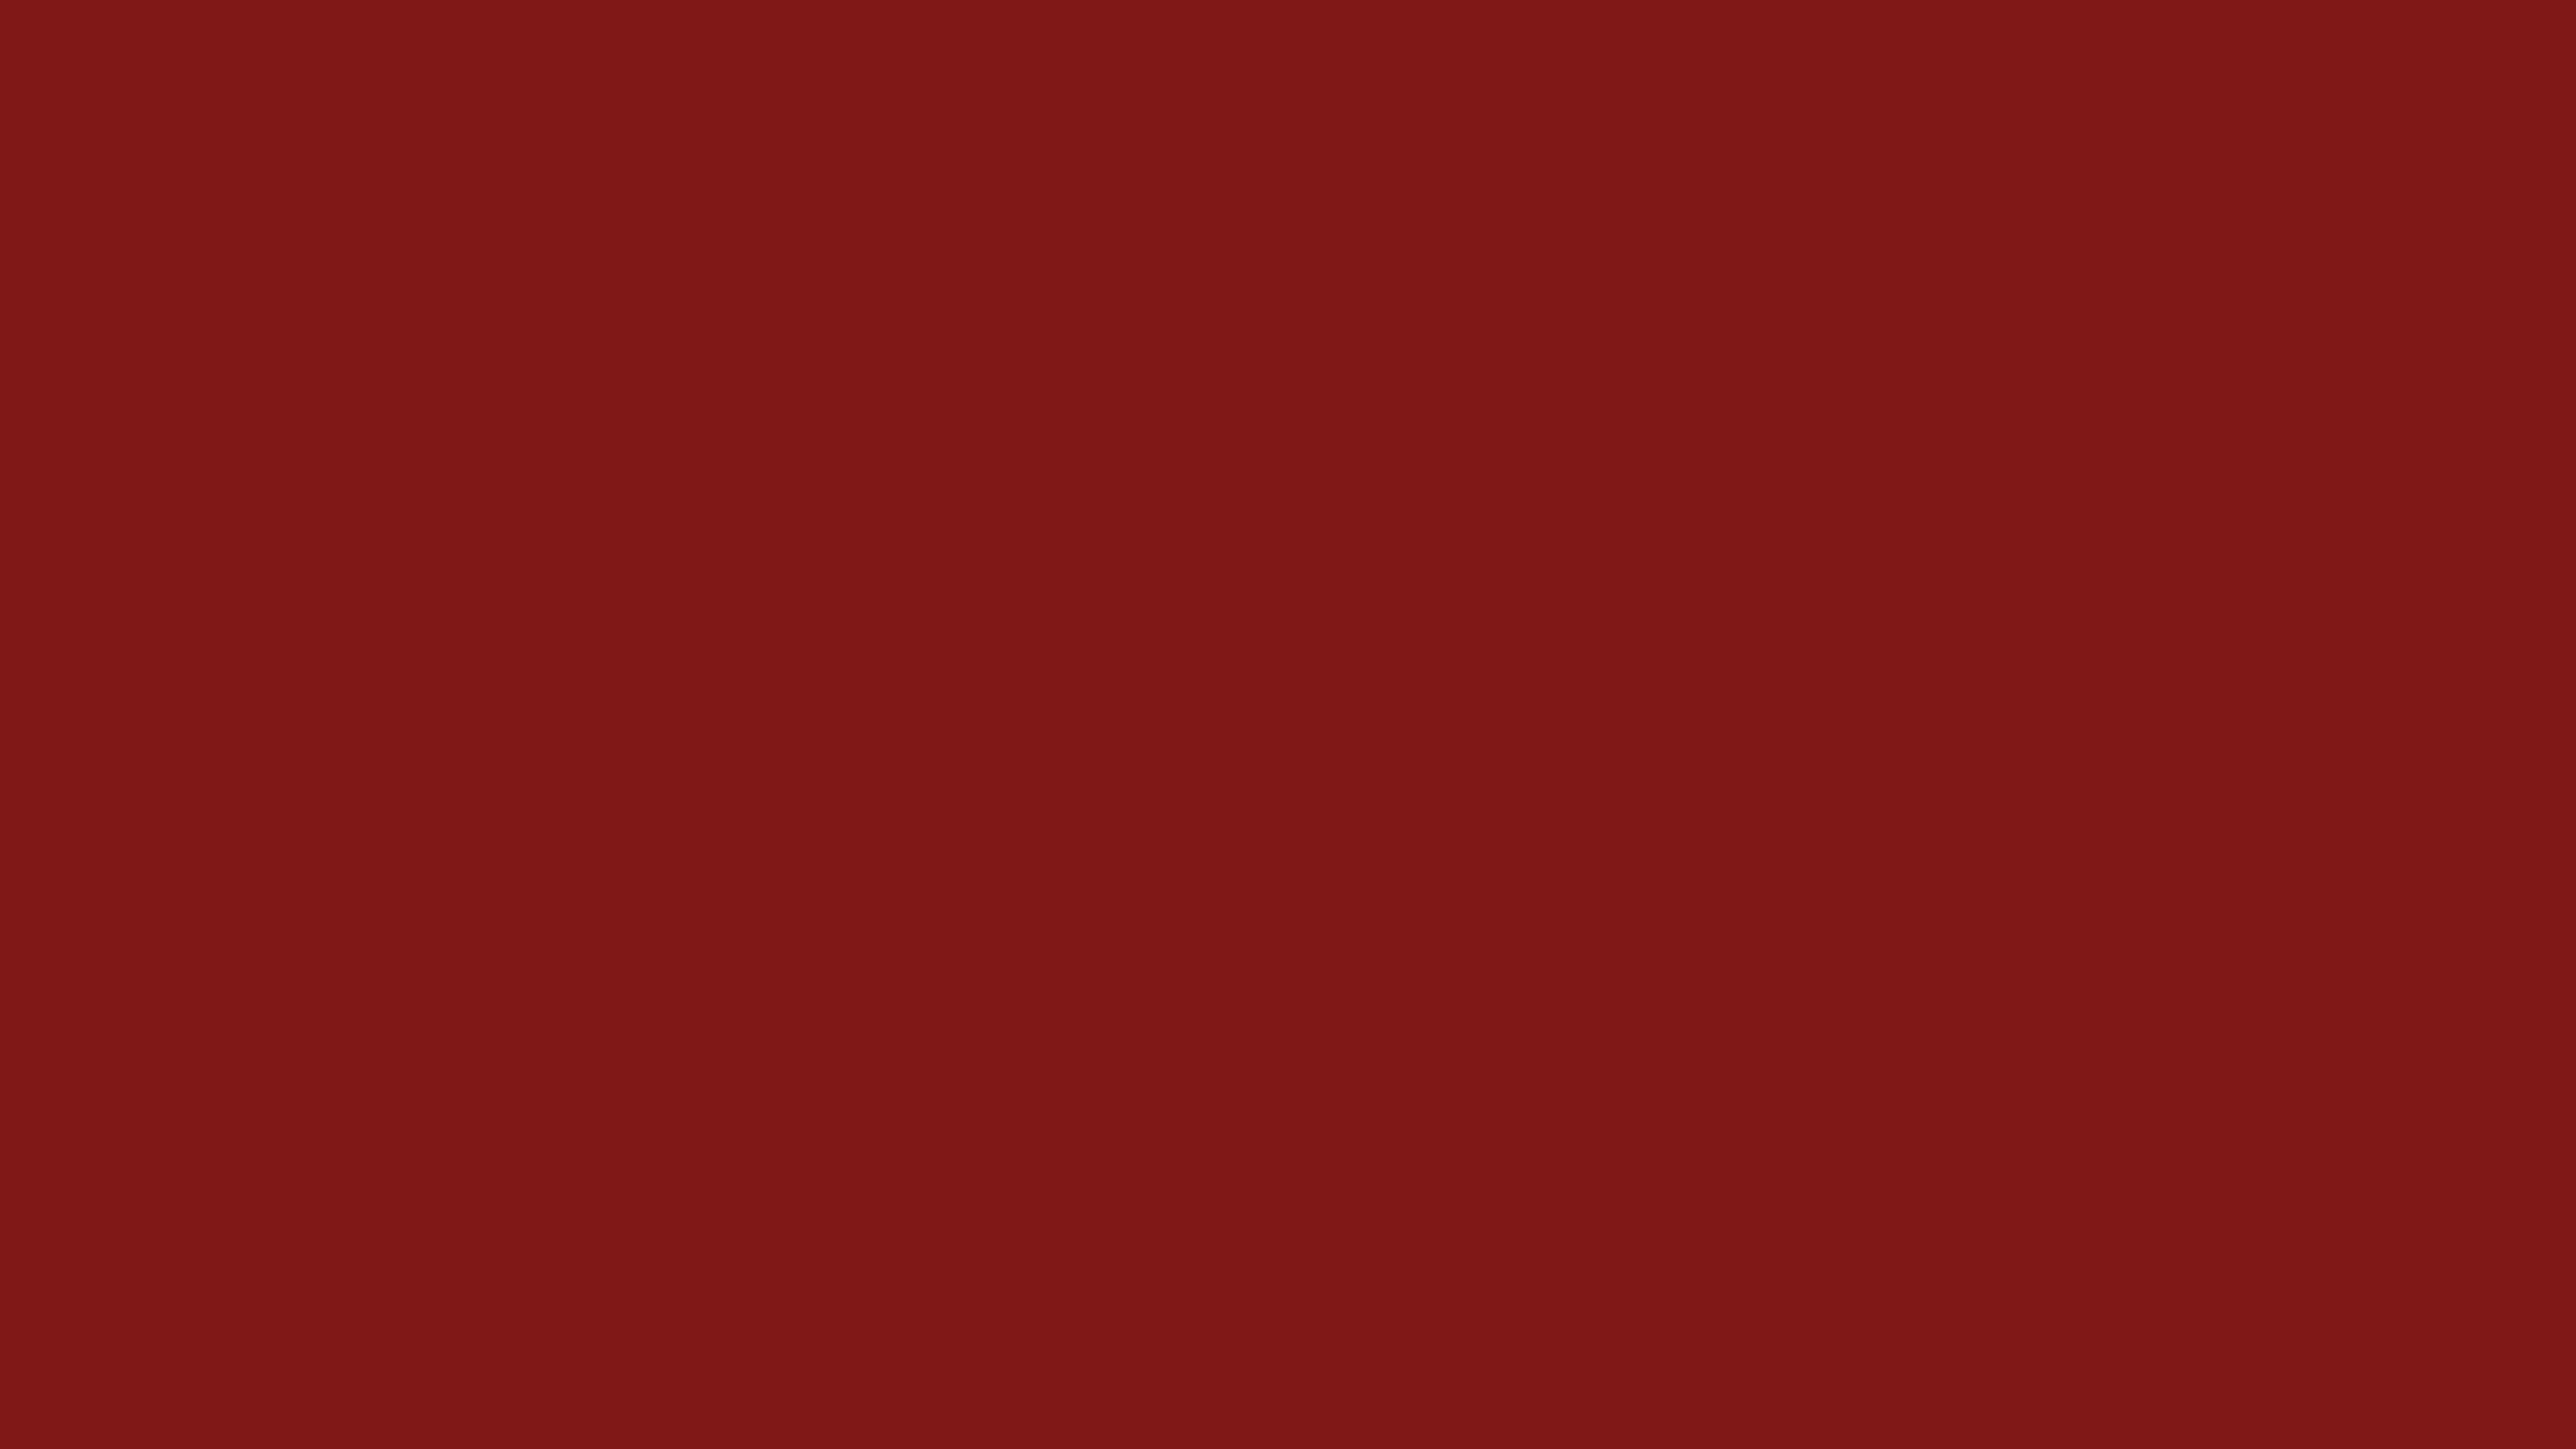 4096x2304 Falu Red Solid Color Background